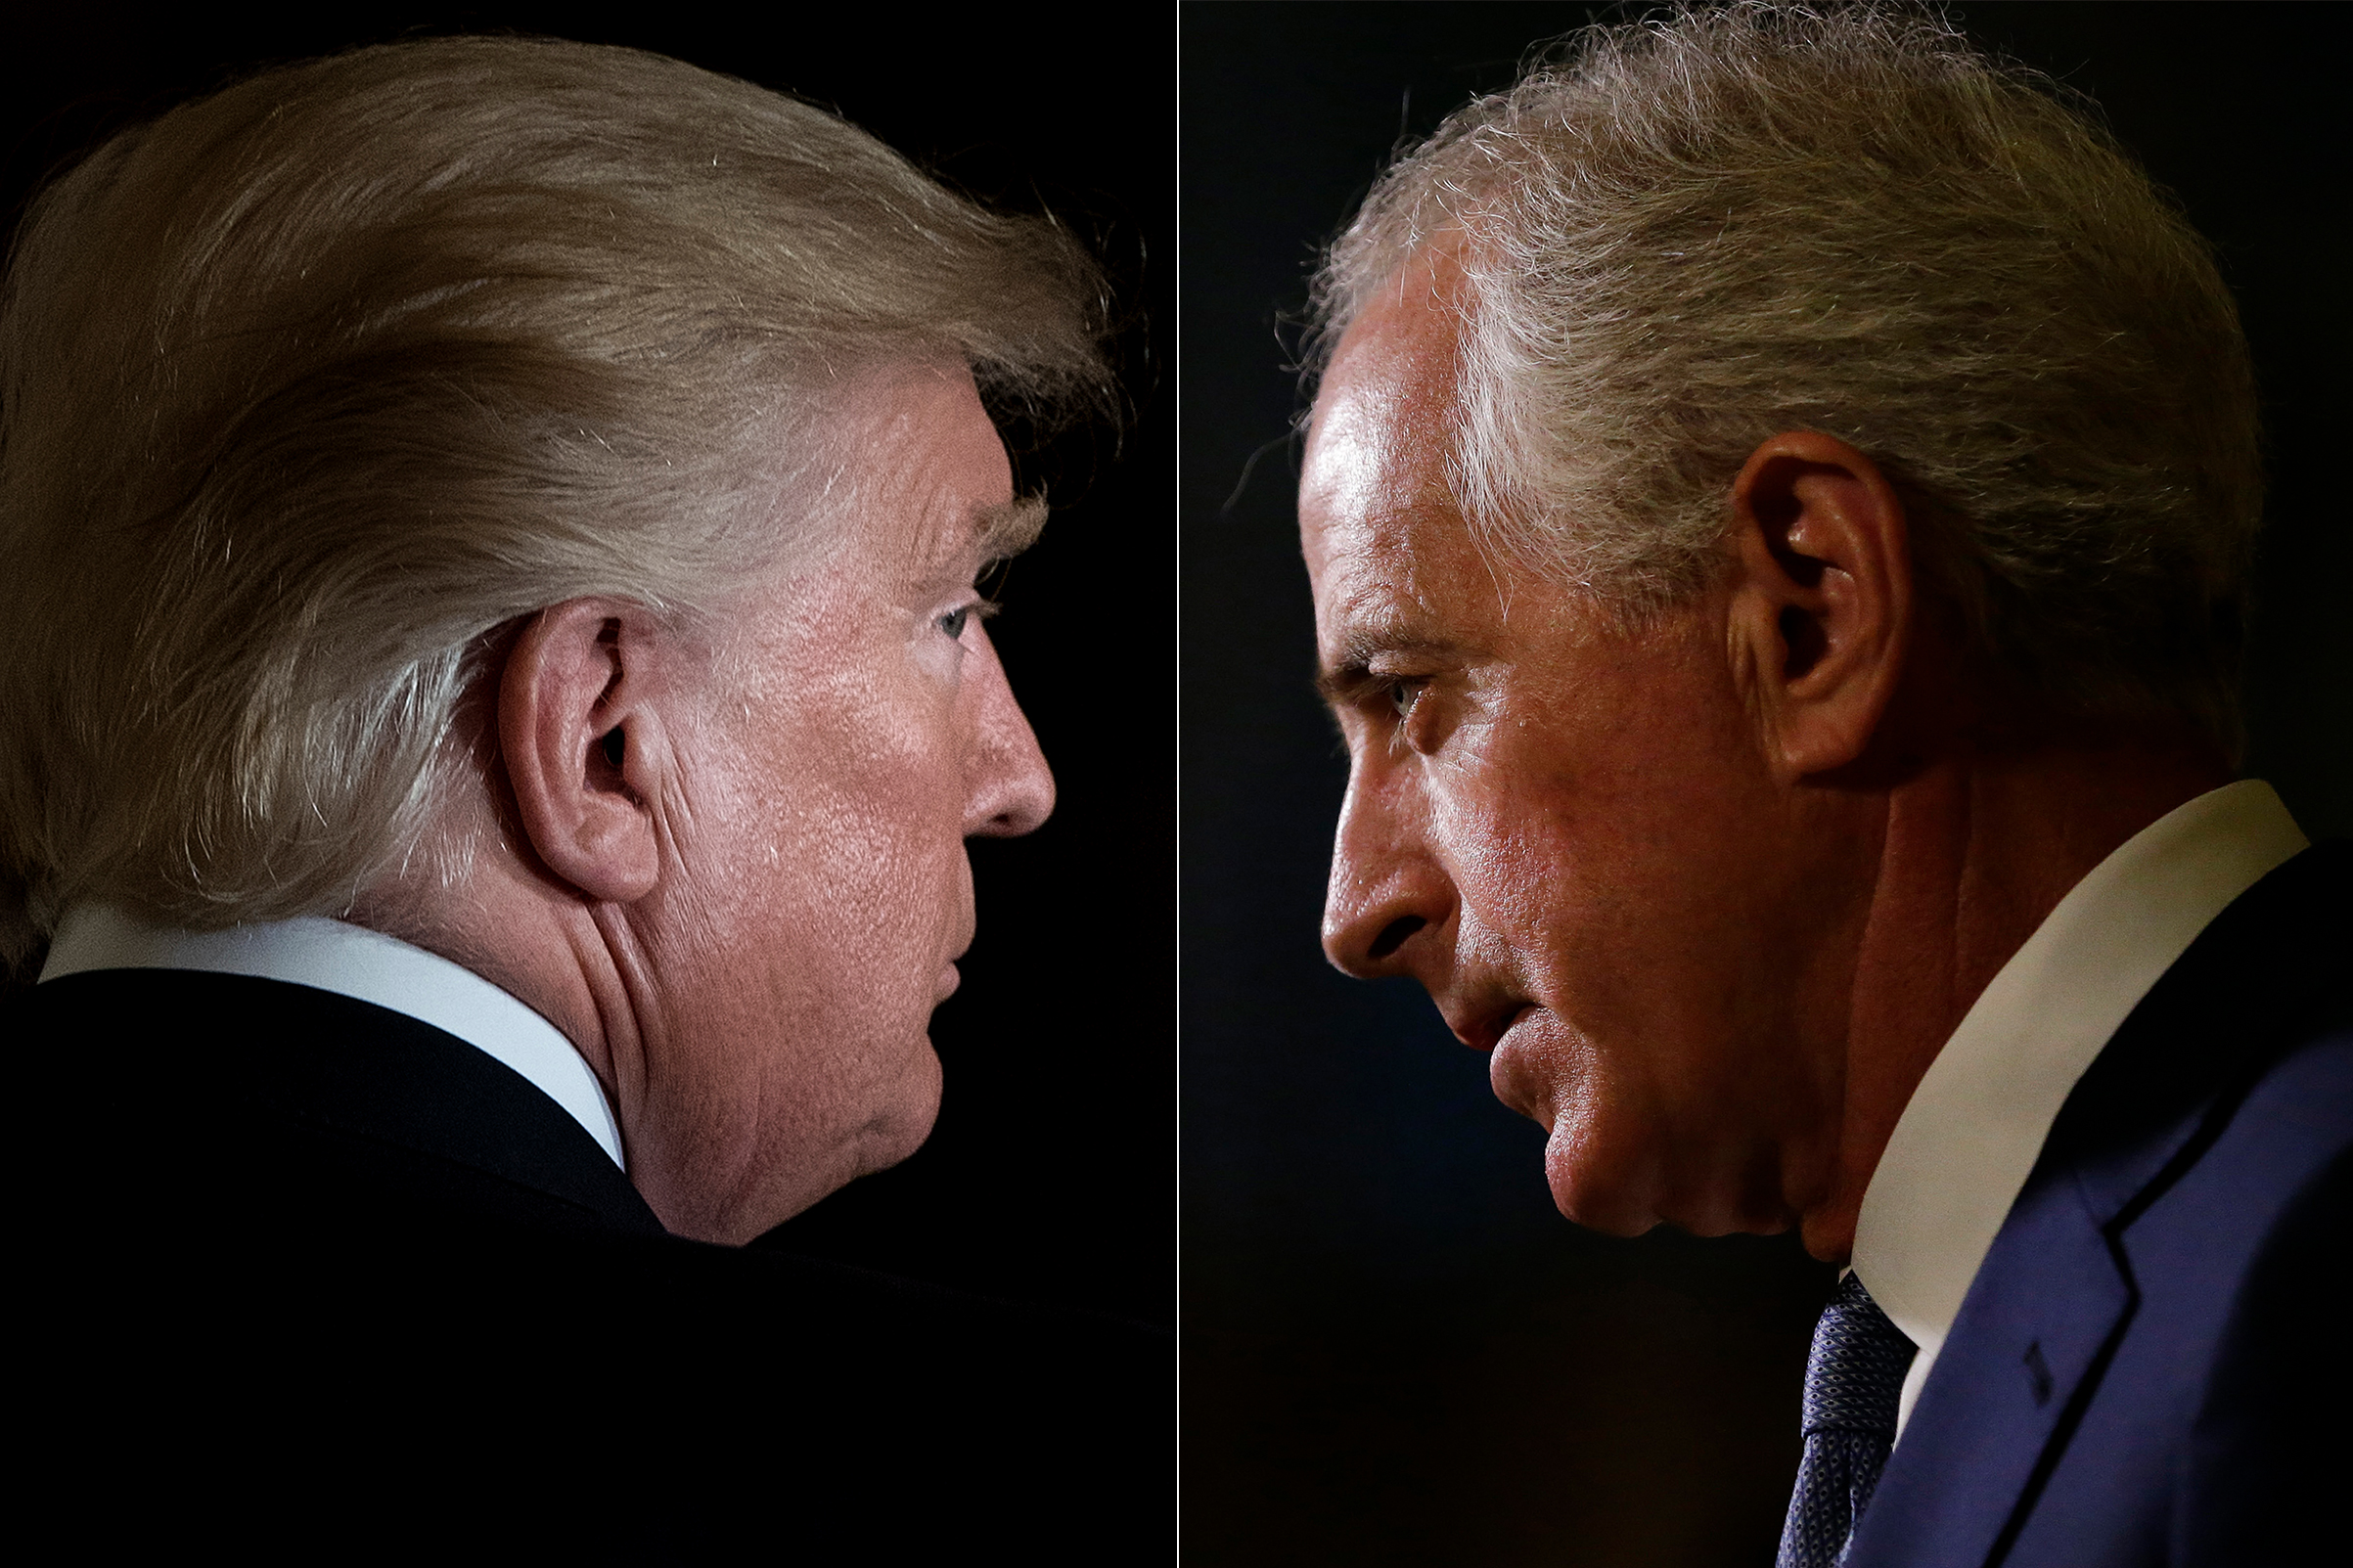 President Donald Trump leaves after a Hispanic Heritage Month event in the East Room of the White House October 6, 2017 in Washington, DC.                   ; Senator Bob Corker, a Republican from Tennessee, speaks to the media in the lobby at Trump Tower in New York, U.S., on Tuesday, Nov. 29, 2016 in New York City.